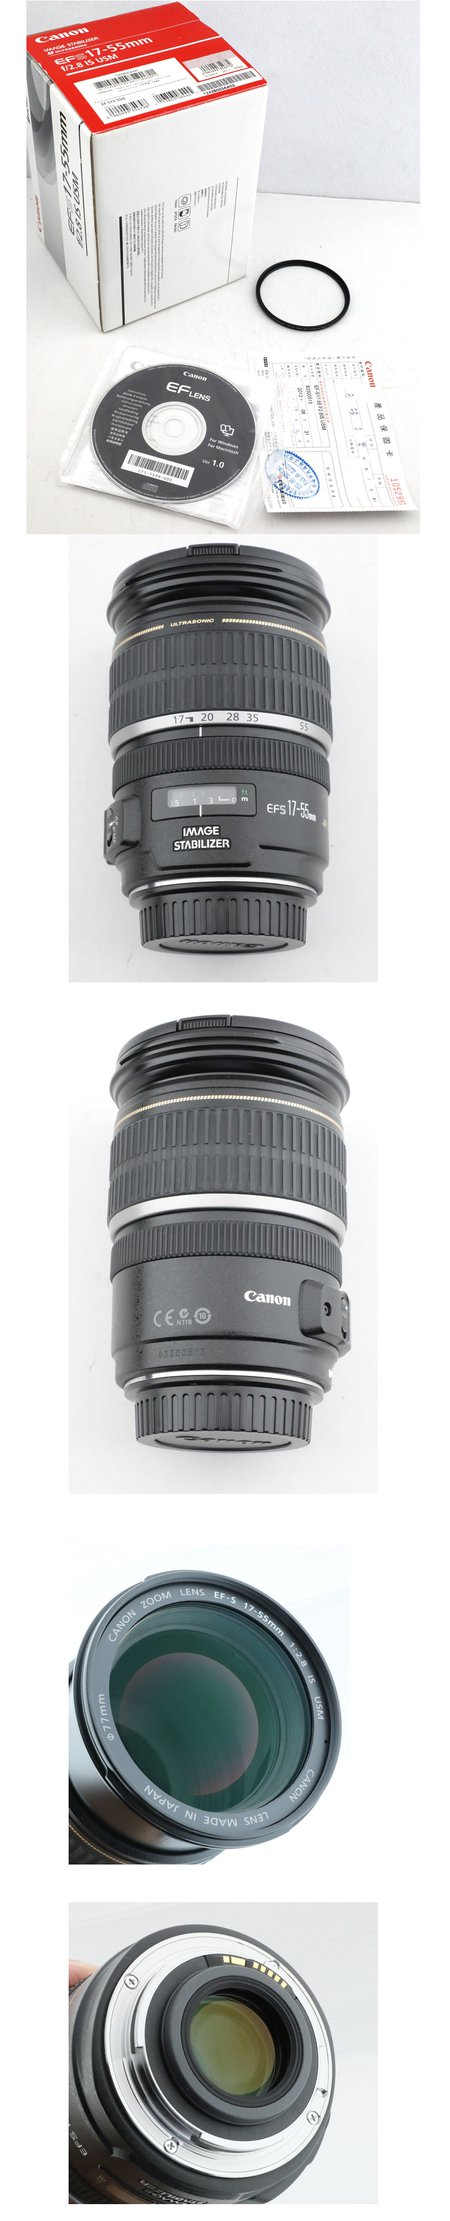 Canon EFs 17-55mm f 2.8 IS 防手震